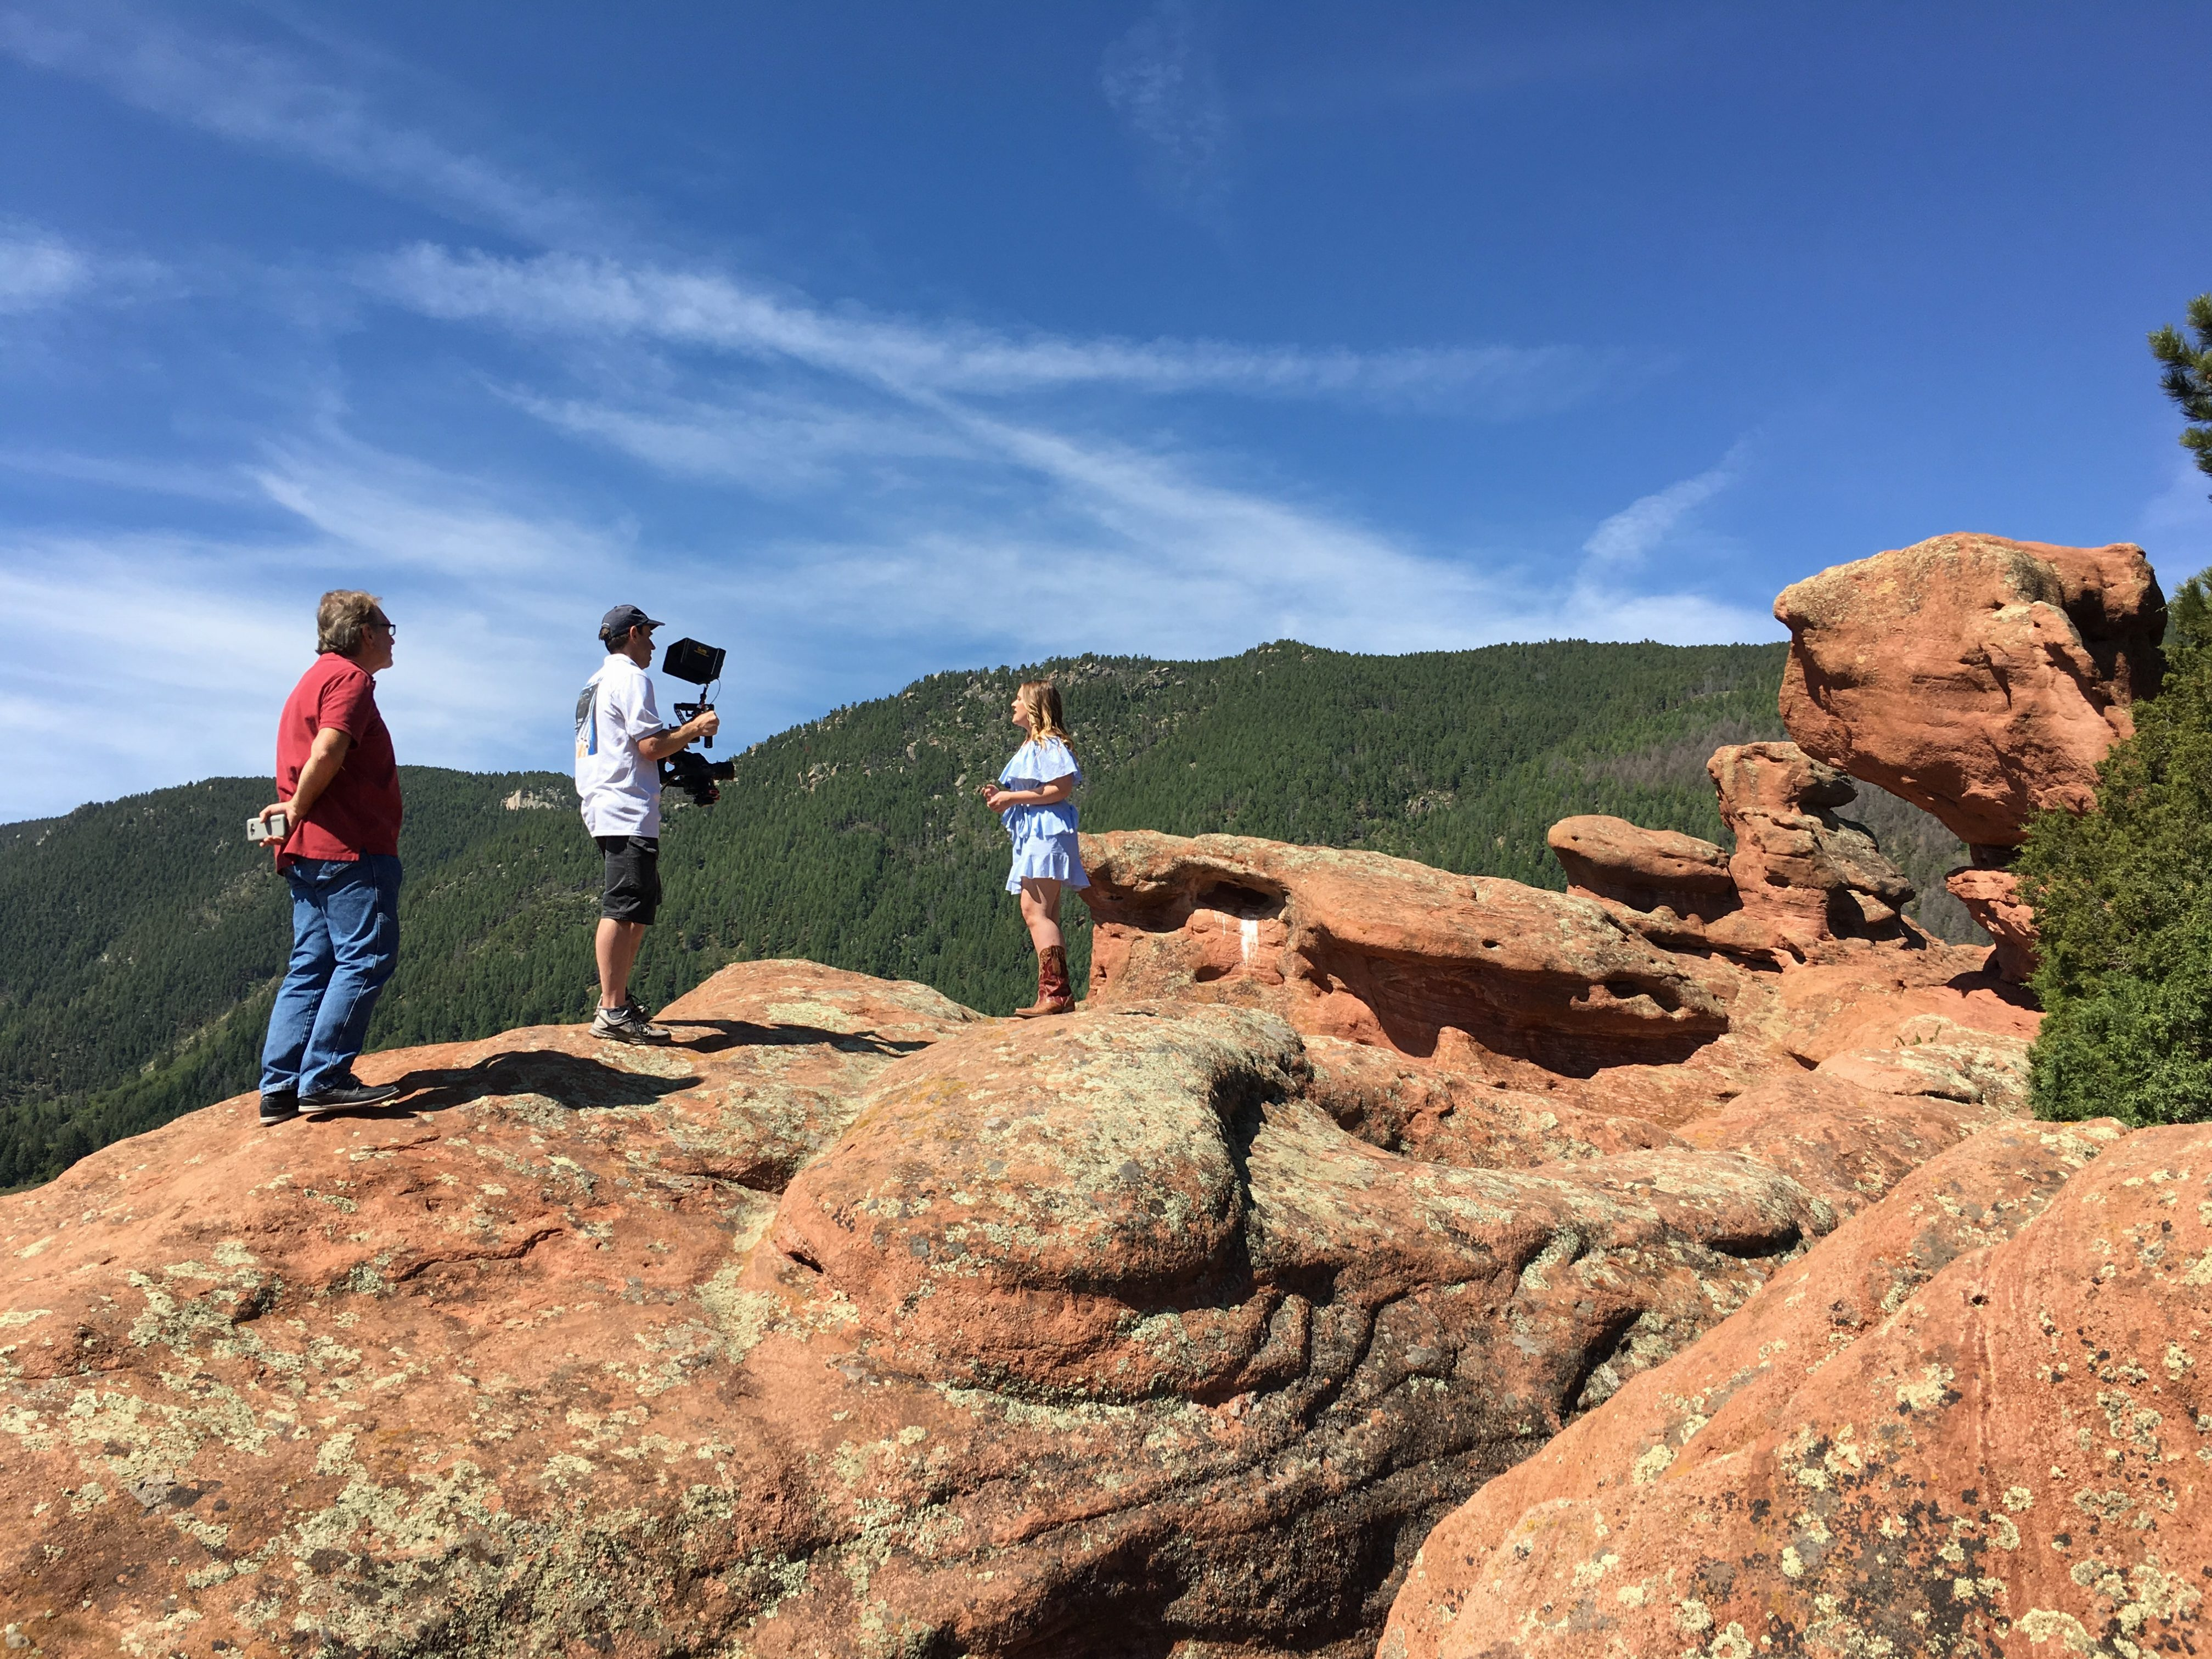 record, steady cam, red rocks, smile, sing, light, music video, background, mountains, filming, ronin, director, professional, quality, behind the scenes, camera, western, country, video, story, tell your story, Colorado, Taylor Rae, Visual Legacy Productions